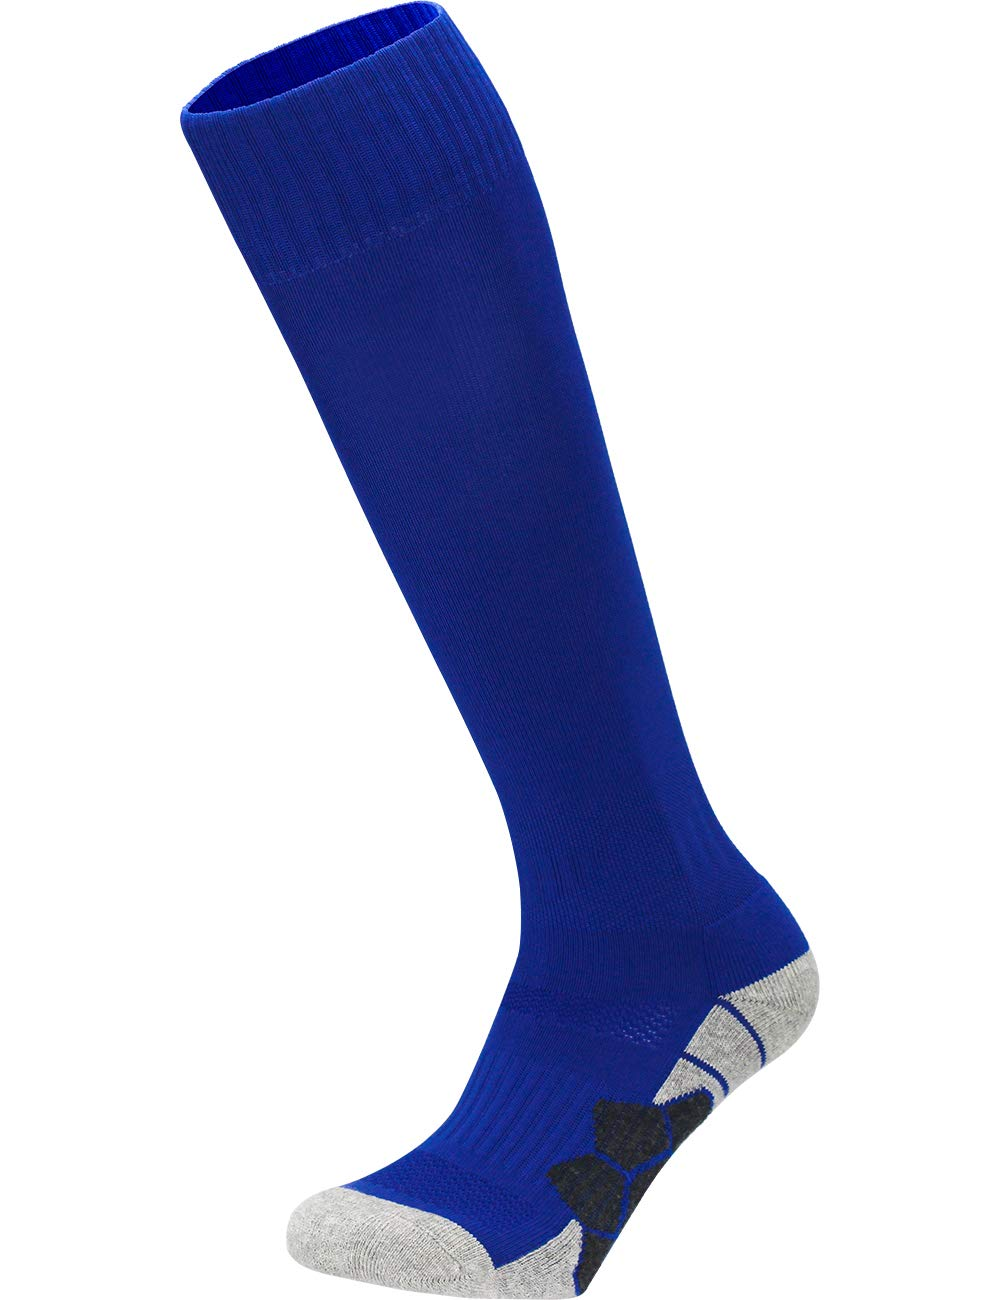 Youth Kids Adult Knee High Cotton Sports Compression Socks Boys Girls Parent-Child Outdoor Active Long Towel Bottom Socks, 1-Pair Blue, Size L (Kids 9C-13C / W 10-13 / M 8-12) by APTESOL